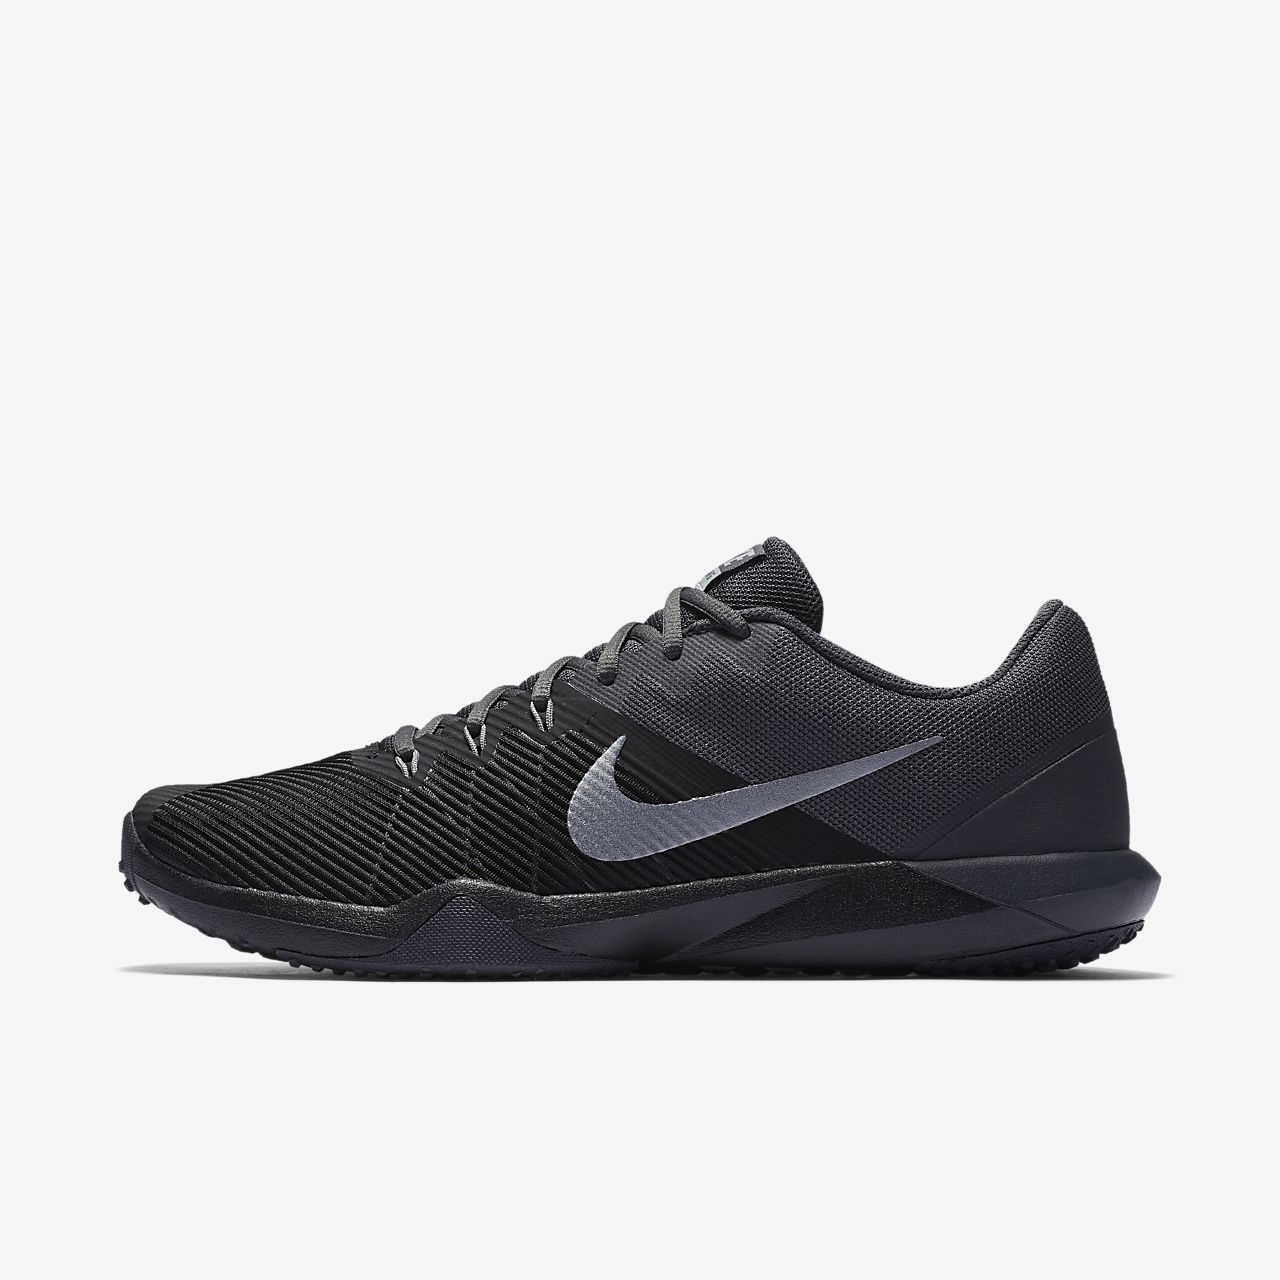 8214514bbe06 Nike Retaliation TR Men s Gym Training Workout Shoe. Nike.com